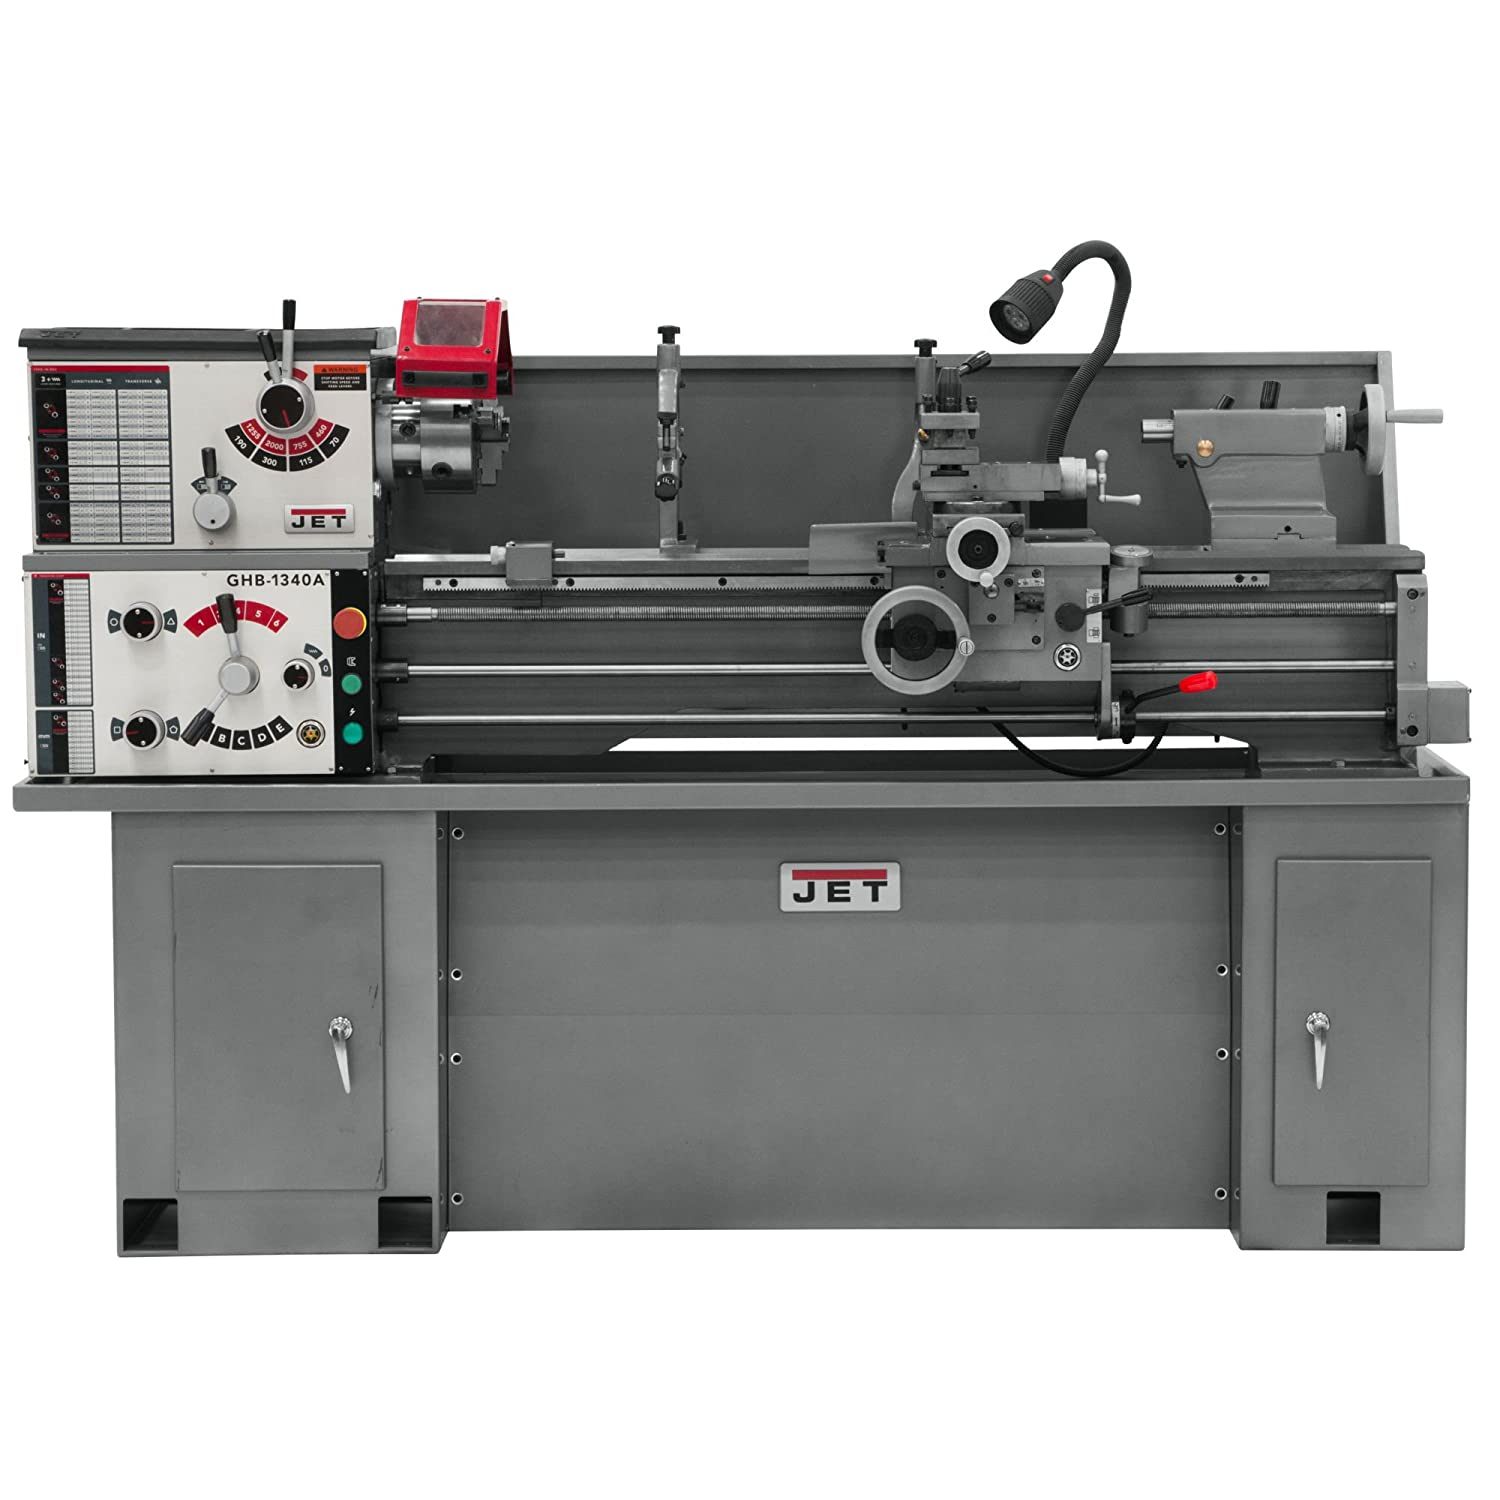 Jet Metal Lathe Wiring Diagram Blog Logan 321357a Ghb 1340a 13 Inch Swing By 40 Between Centers 230 Craftsman